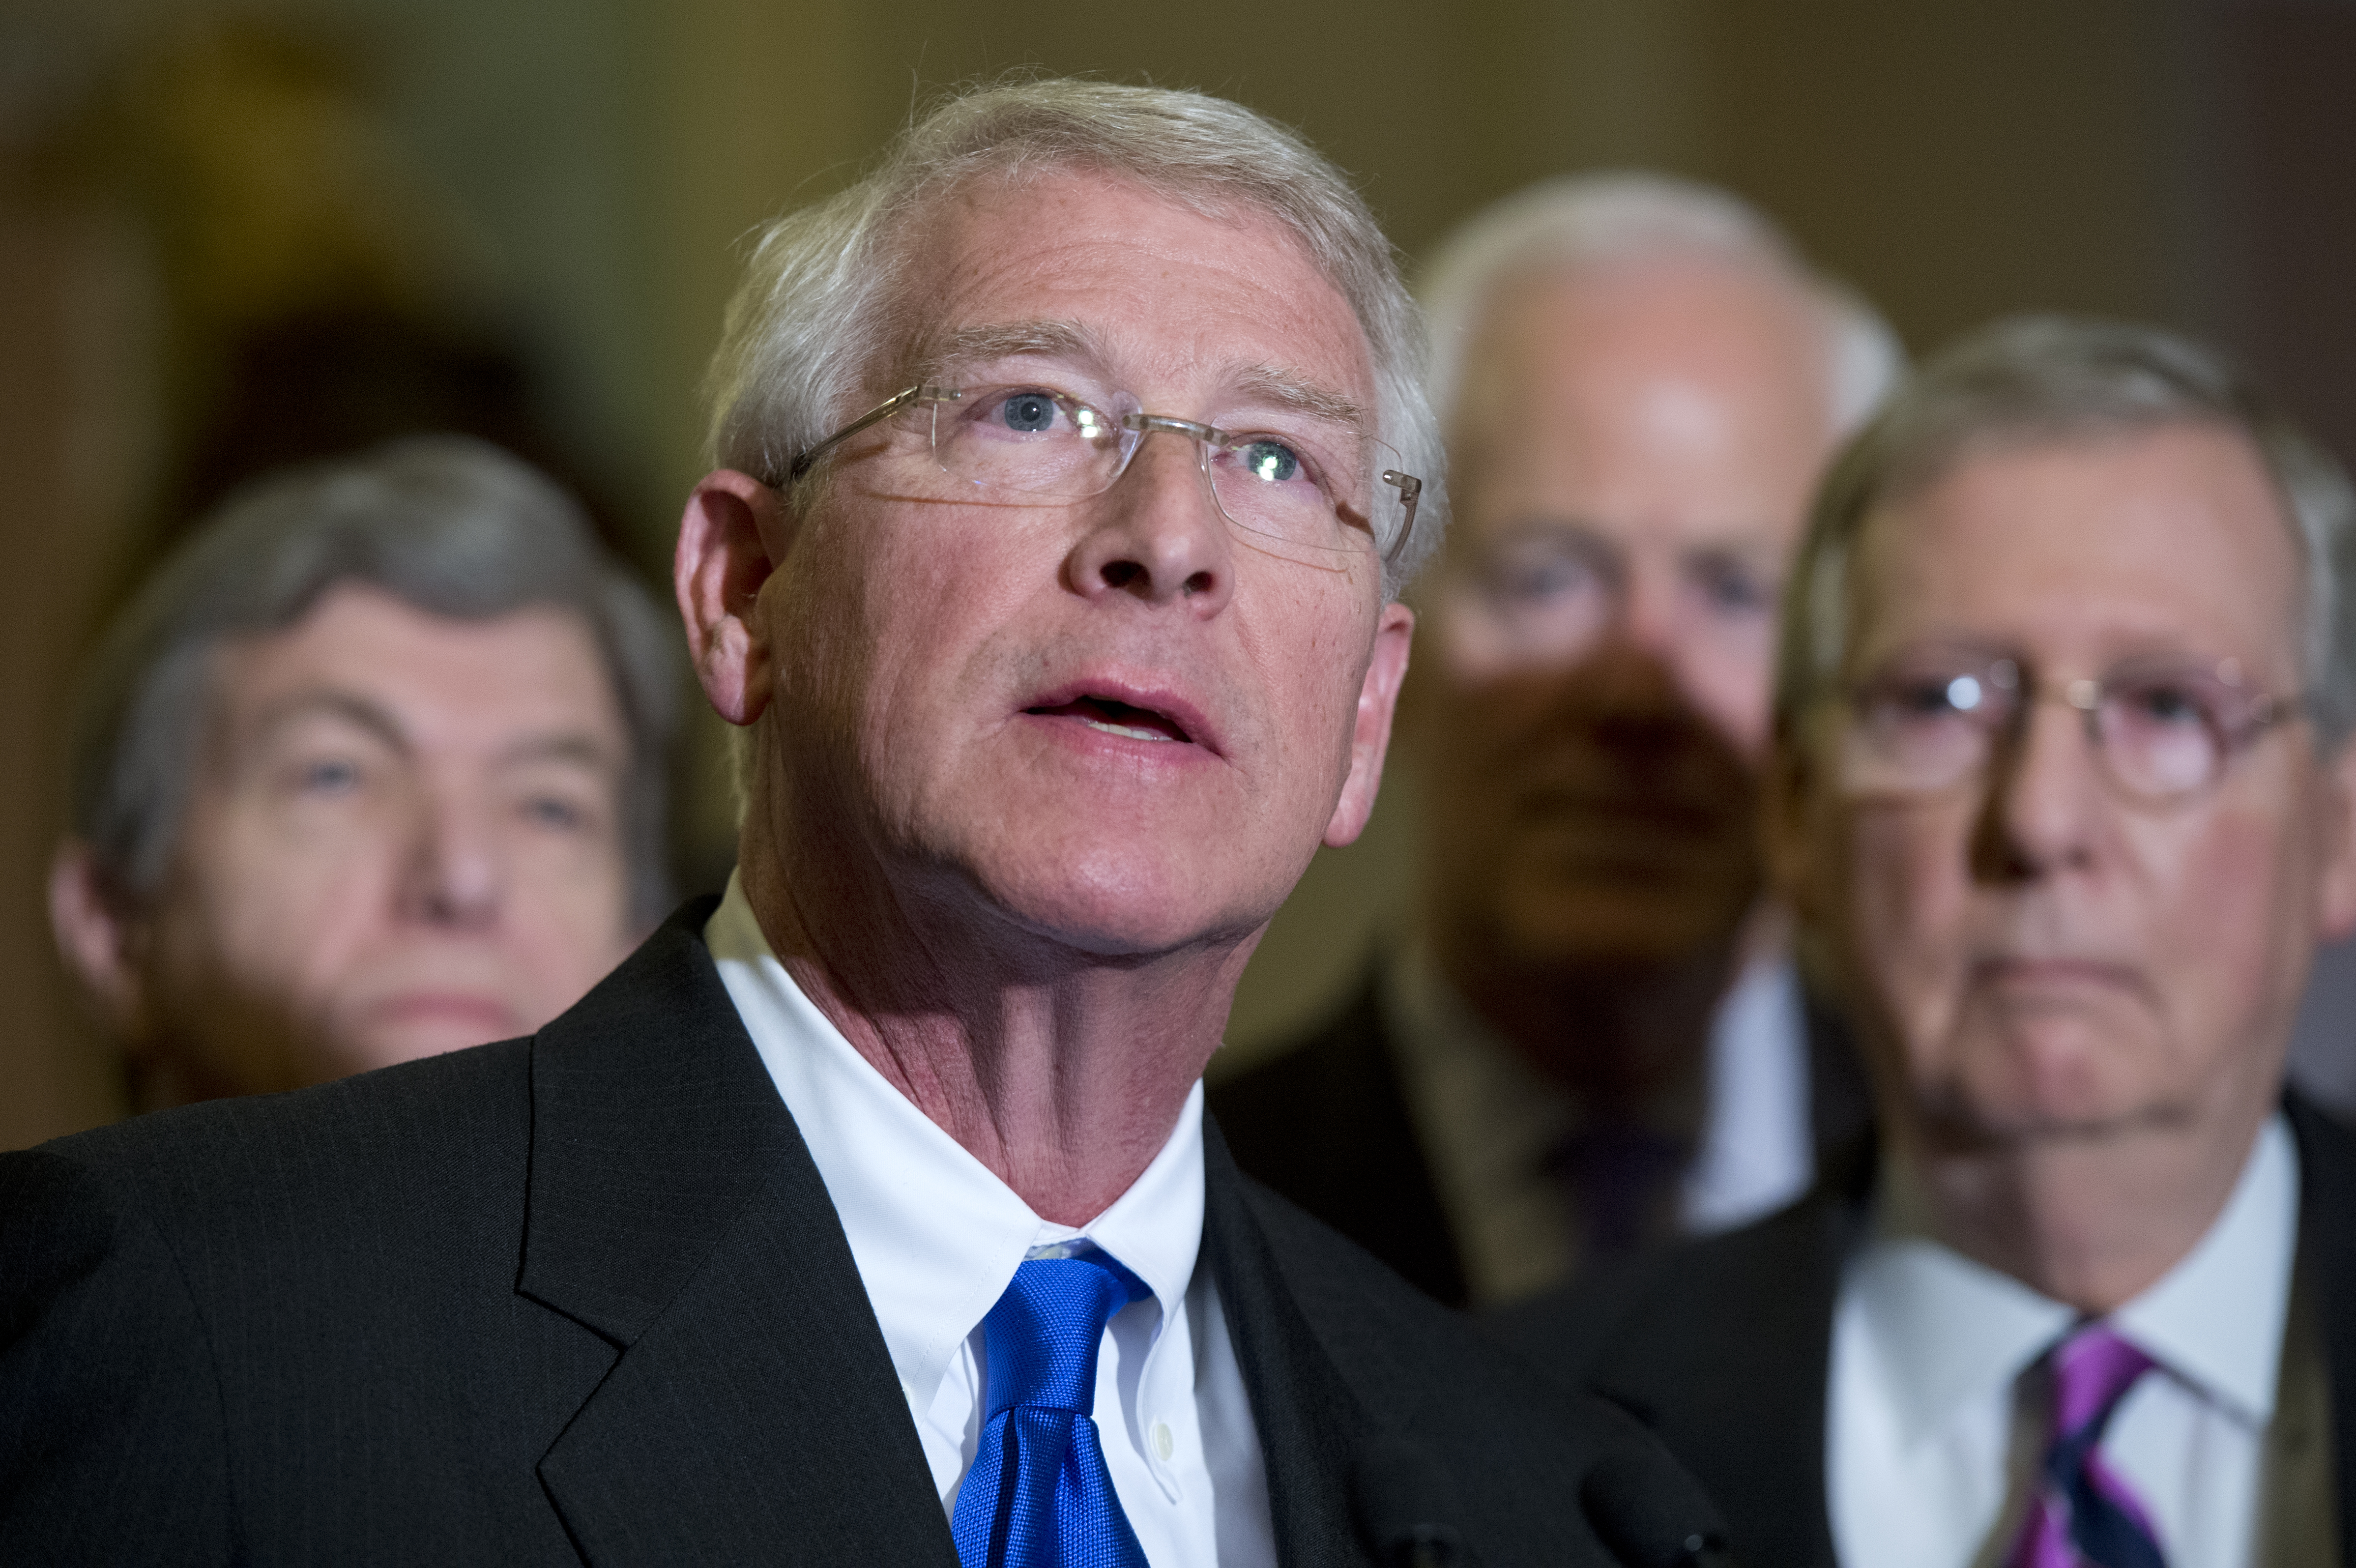 Republican Senator Roger Wicker of Mississippi speaks at a news conference after the Senate luncheons in the Capitol on Jan. 7, 2015